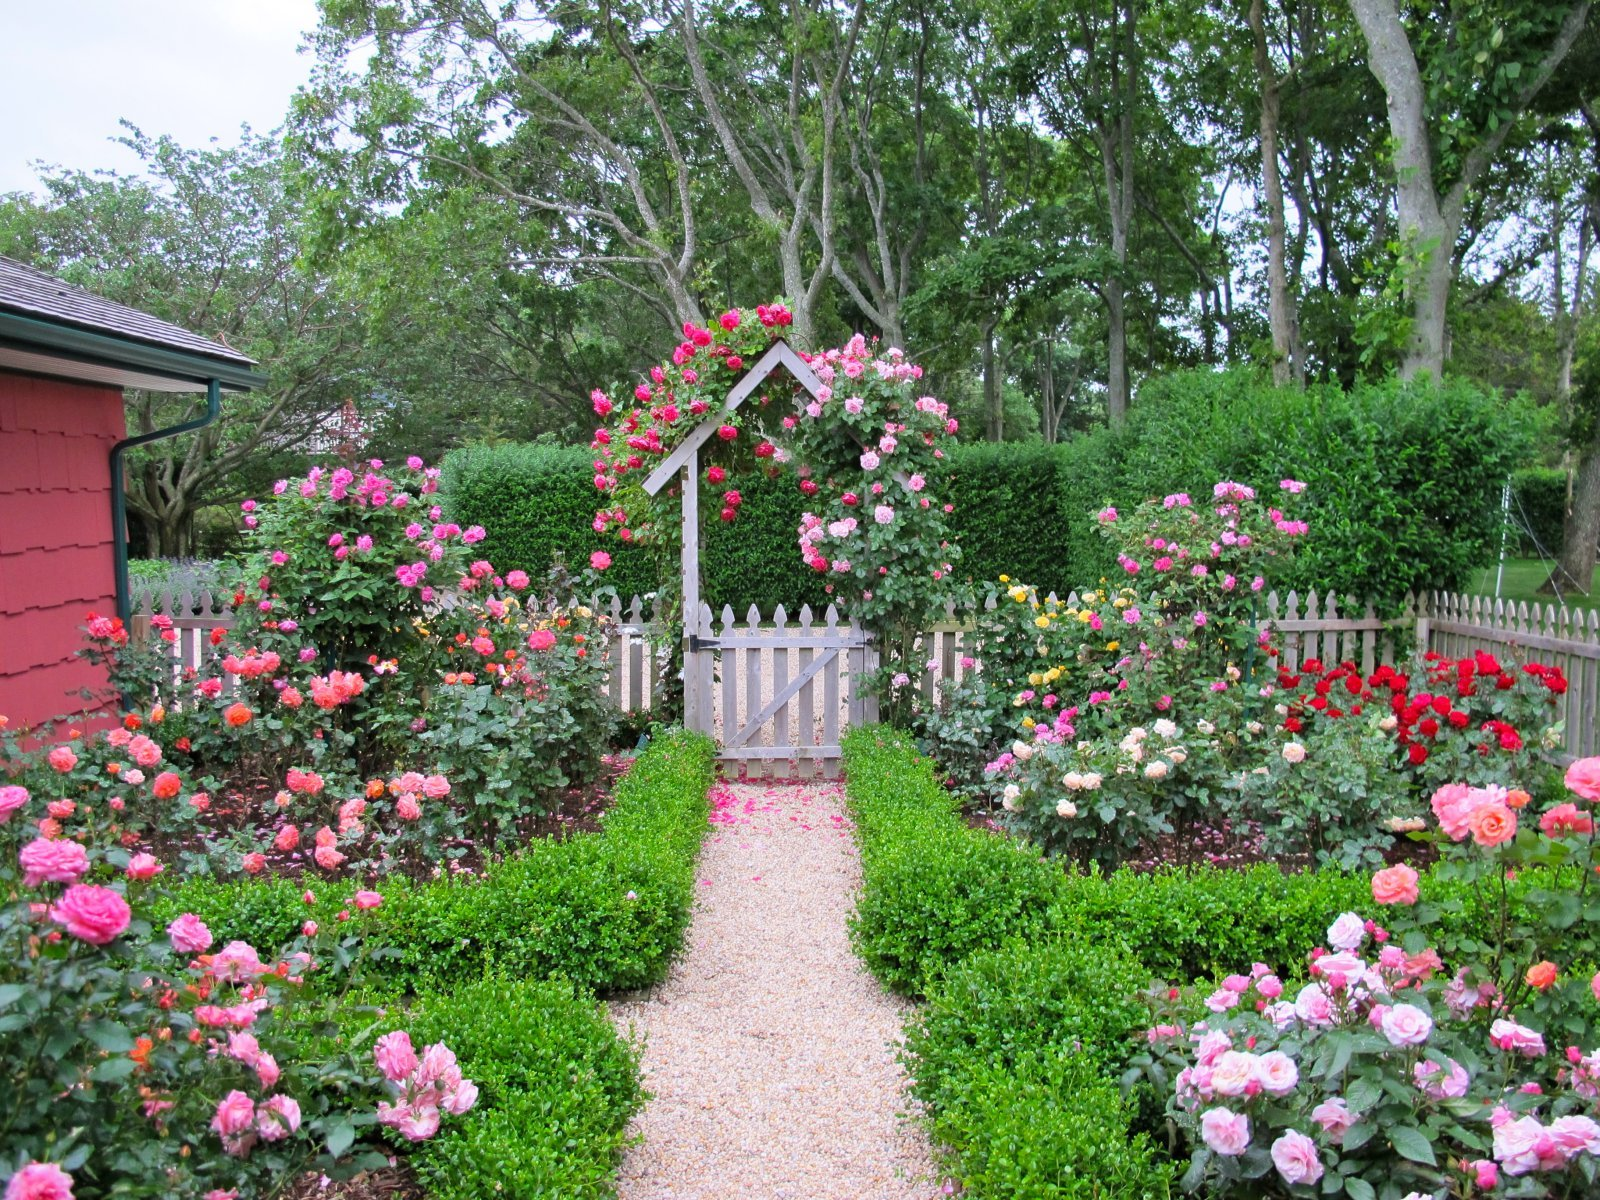 Cottage-garden-design-with-roses.jpg